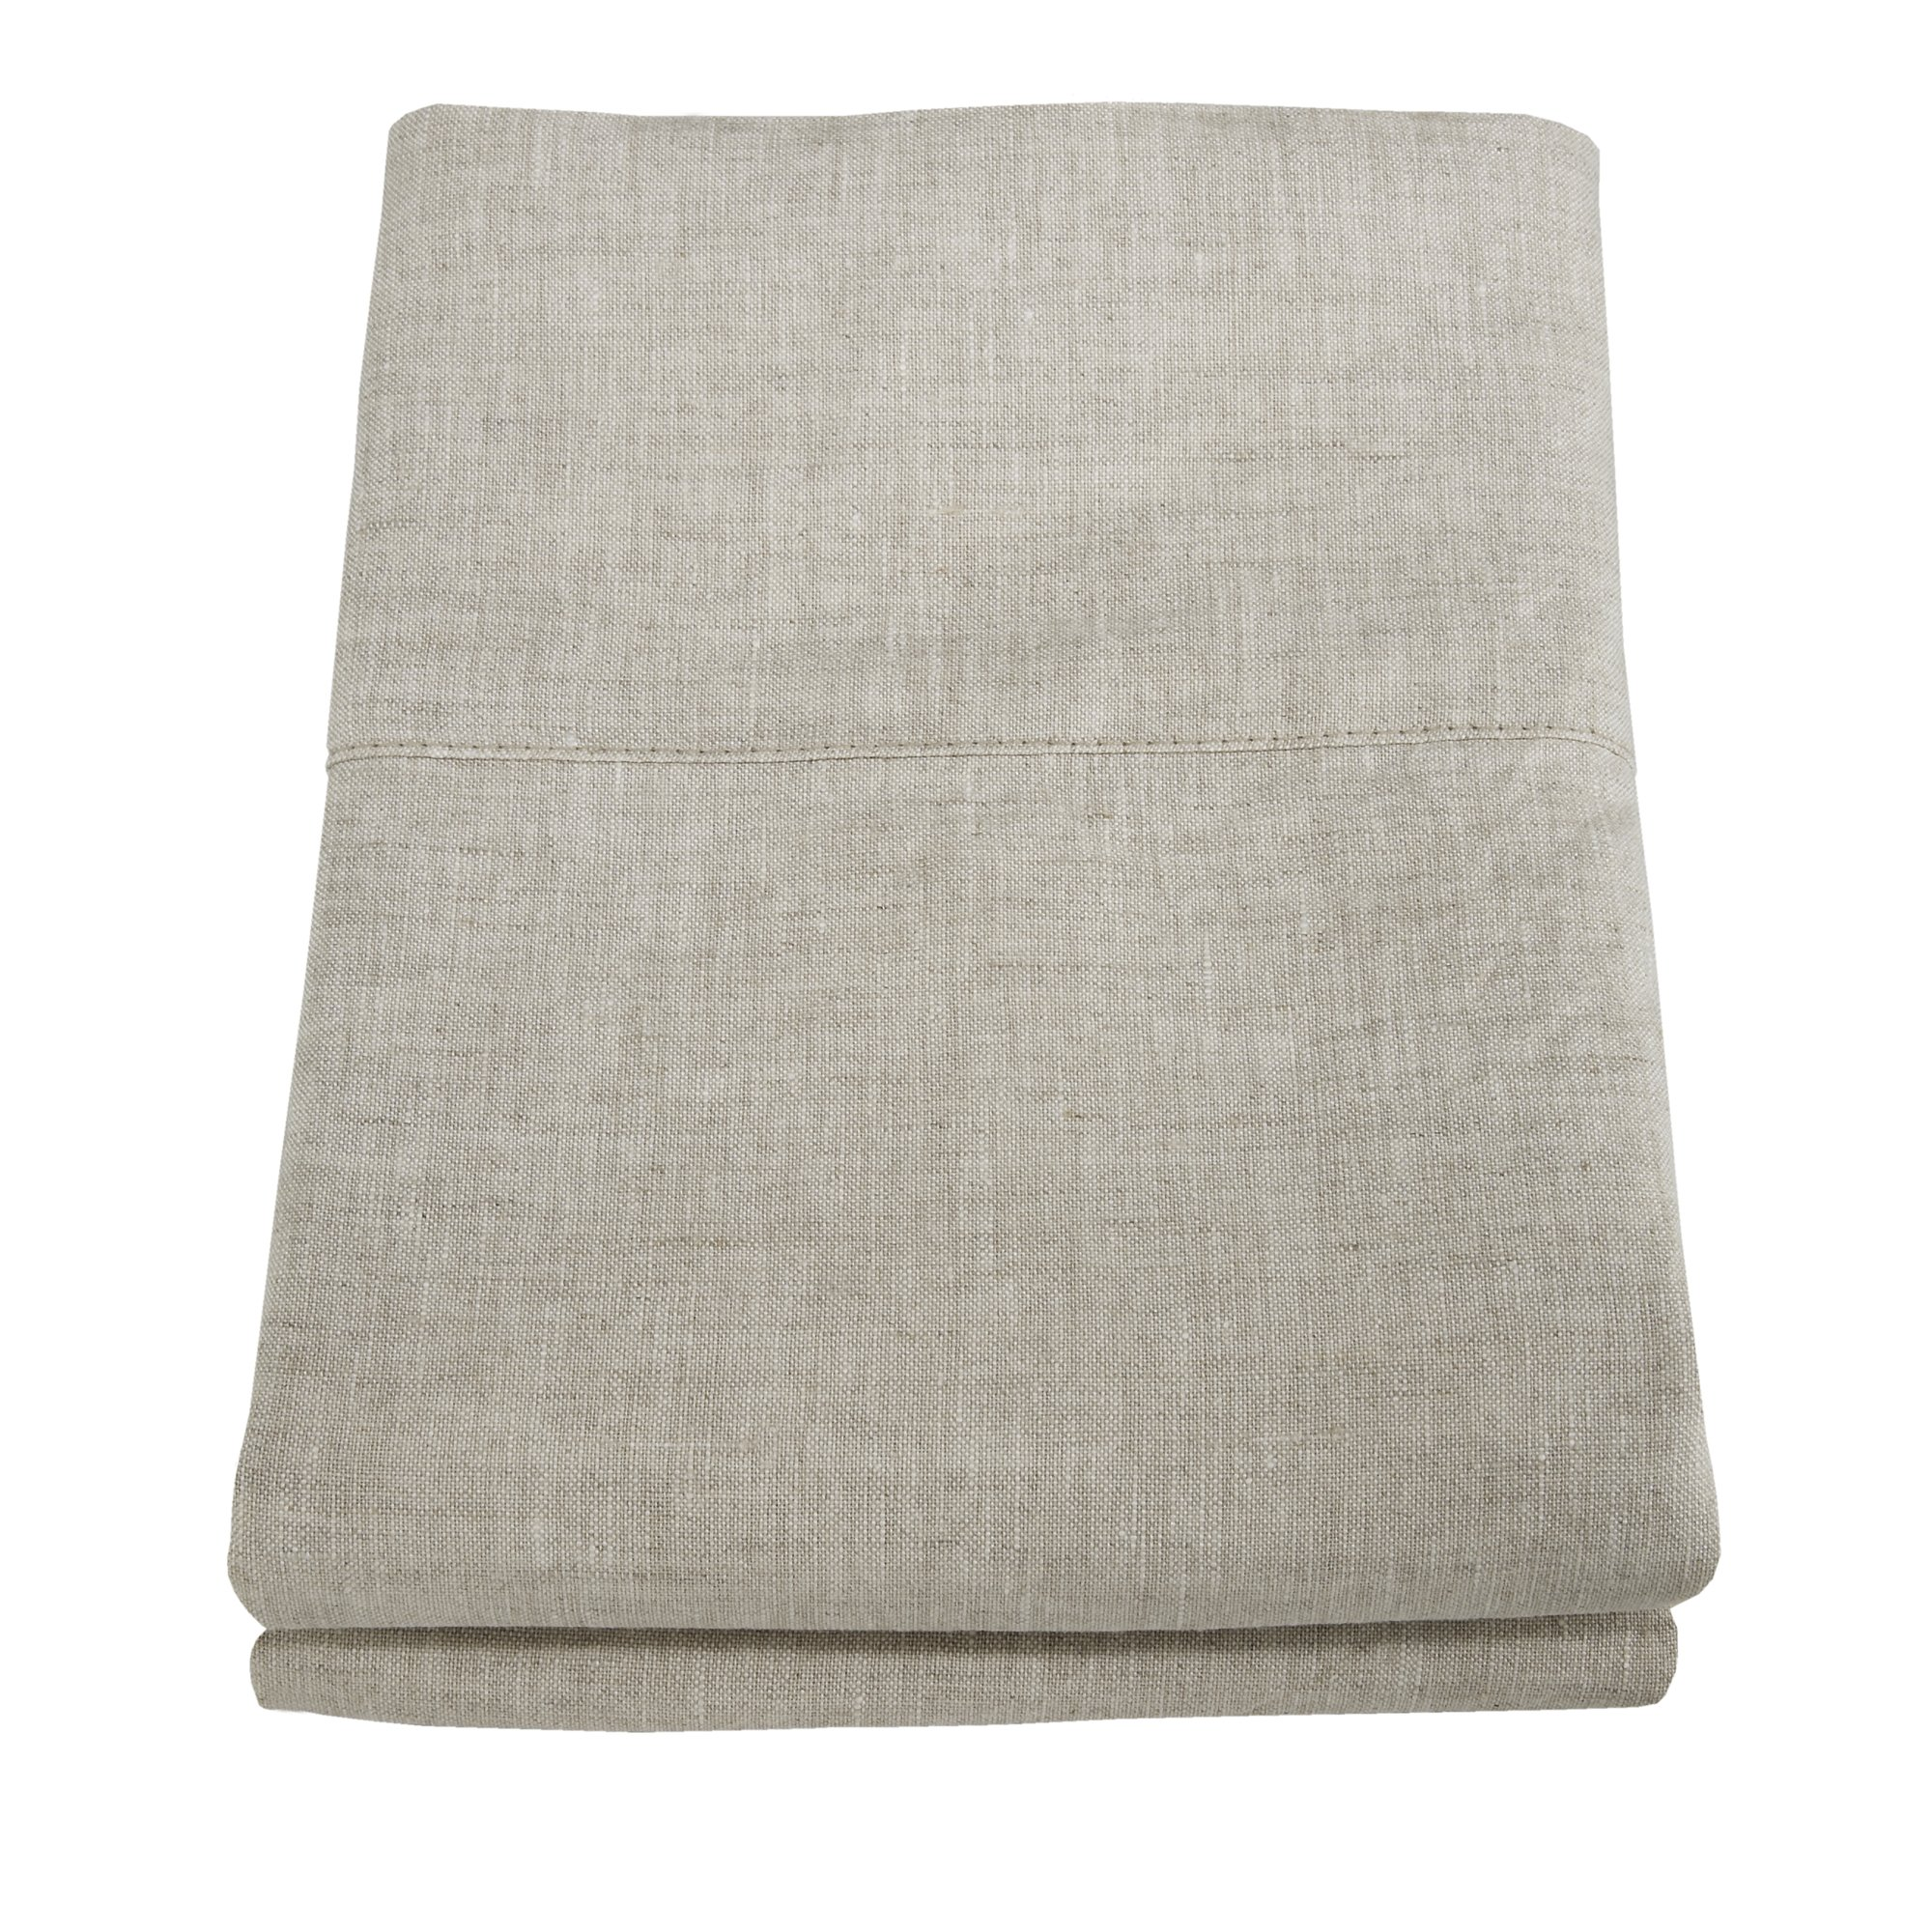 Linoto 100% Linen Pillowcases 31x20, Standard, Natural Oatmeal